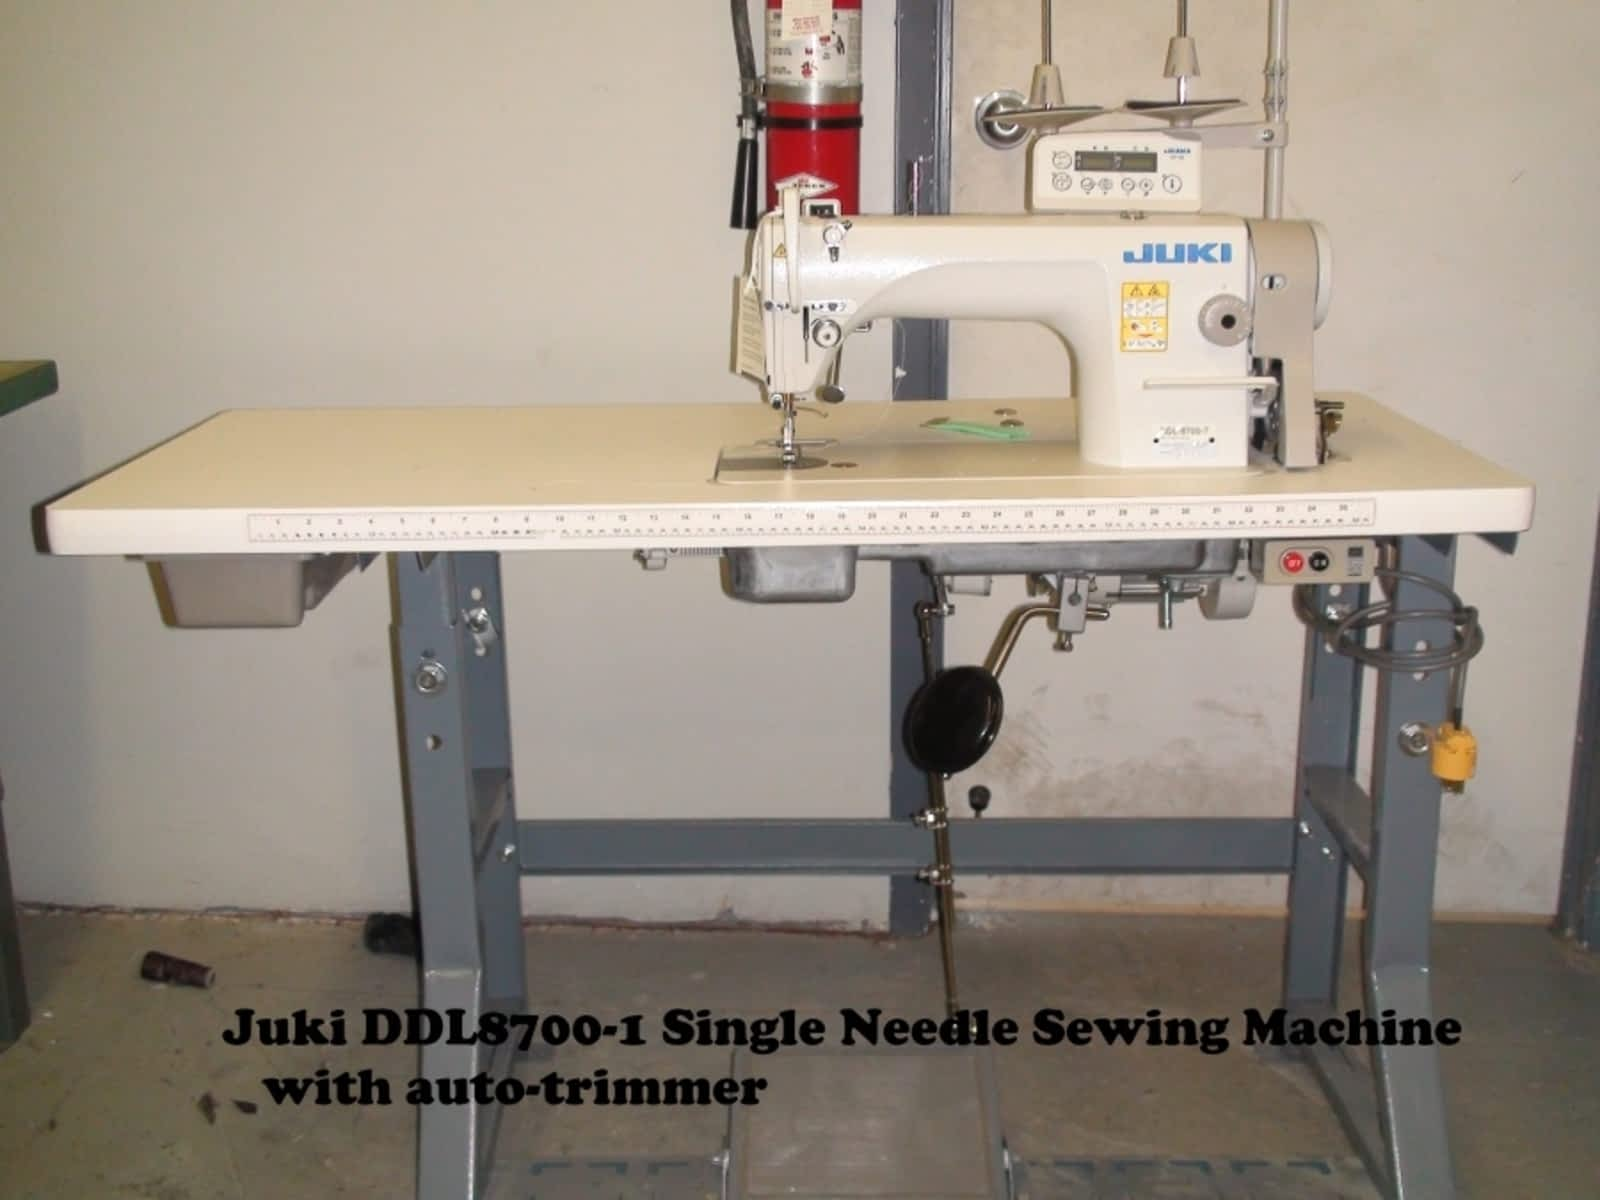 Johnny Sewing Machine Opening Hours 2 31 Progress Ave